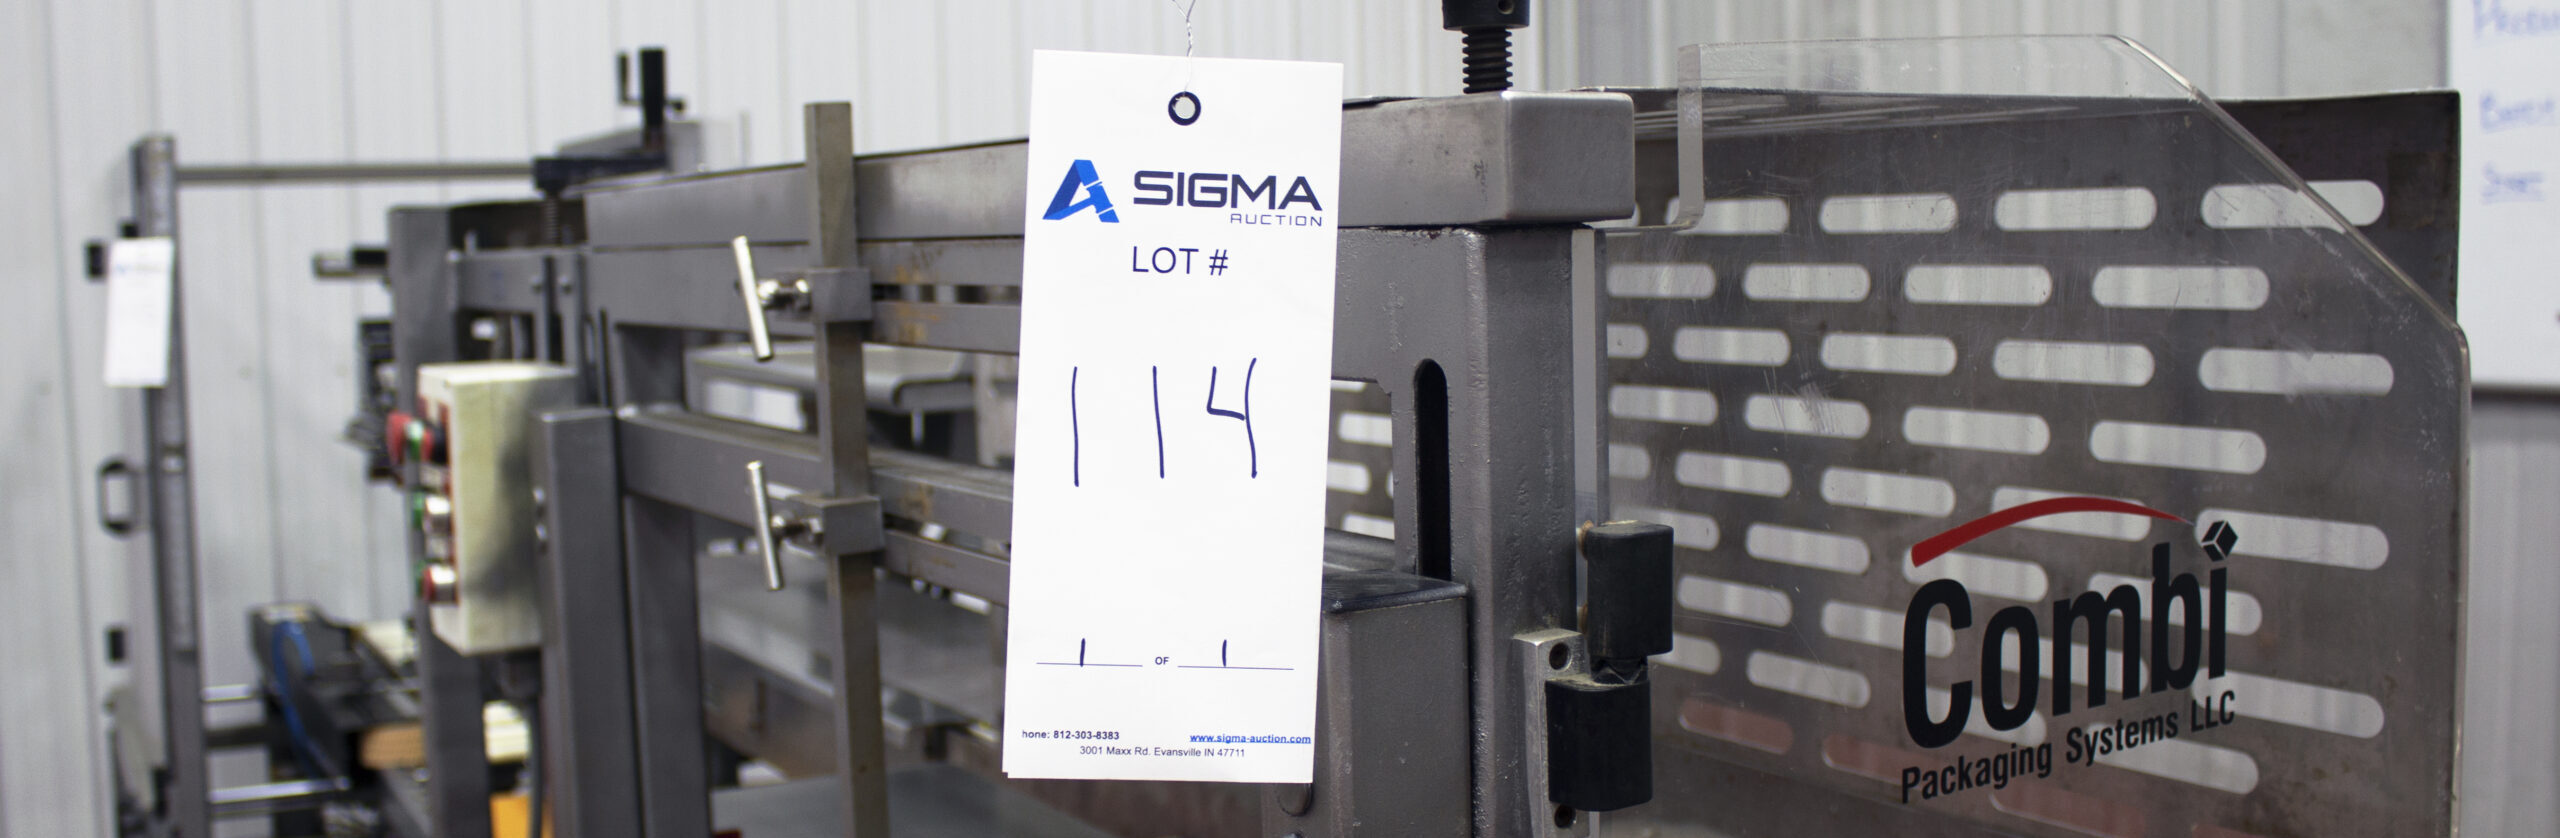 Sigma-auction-Combi-Machine-Auction-Tag-Lot-114